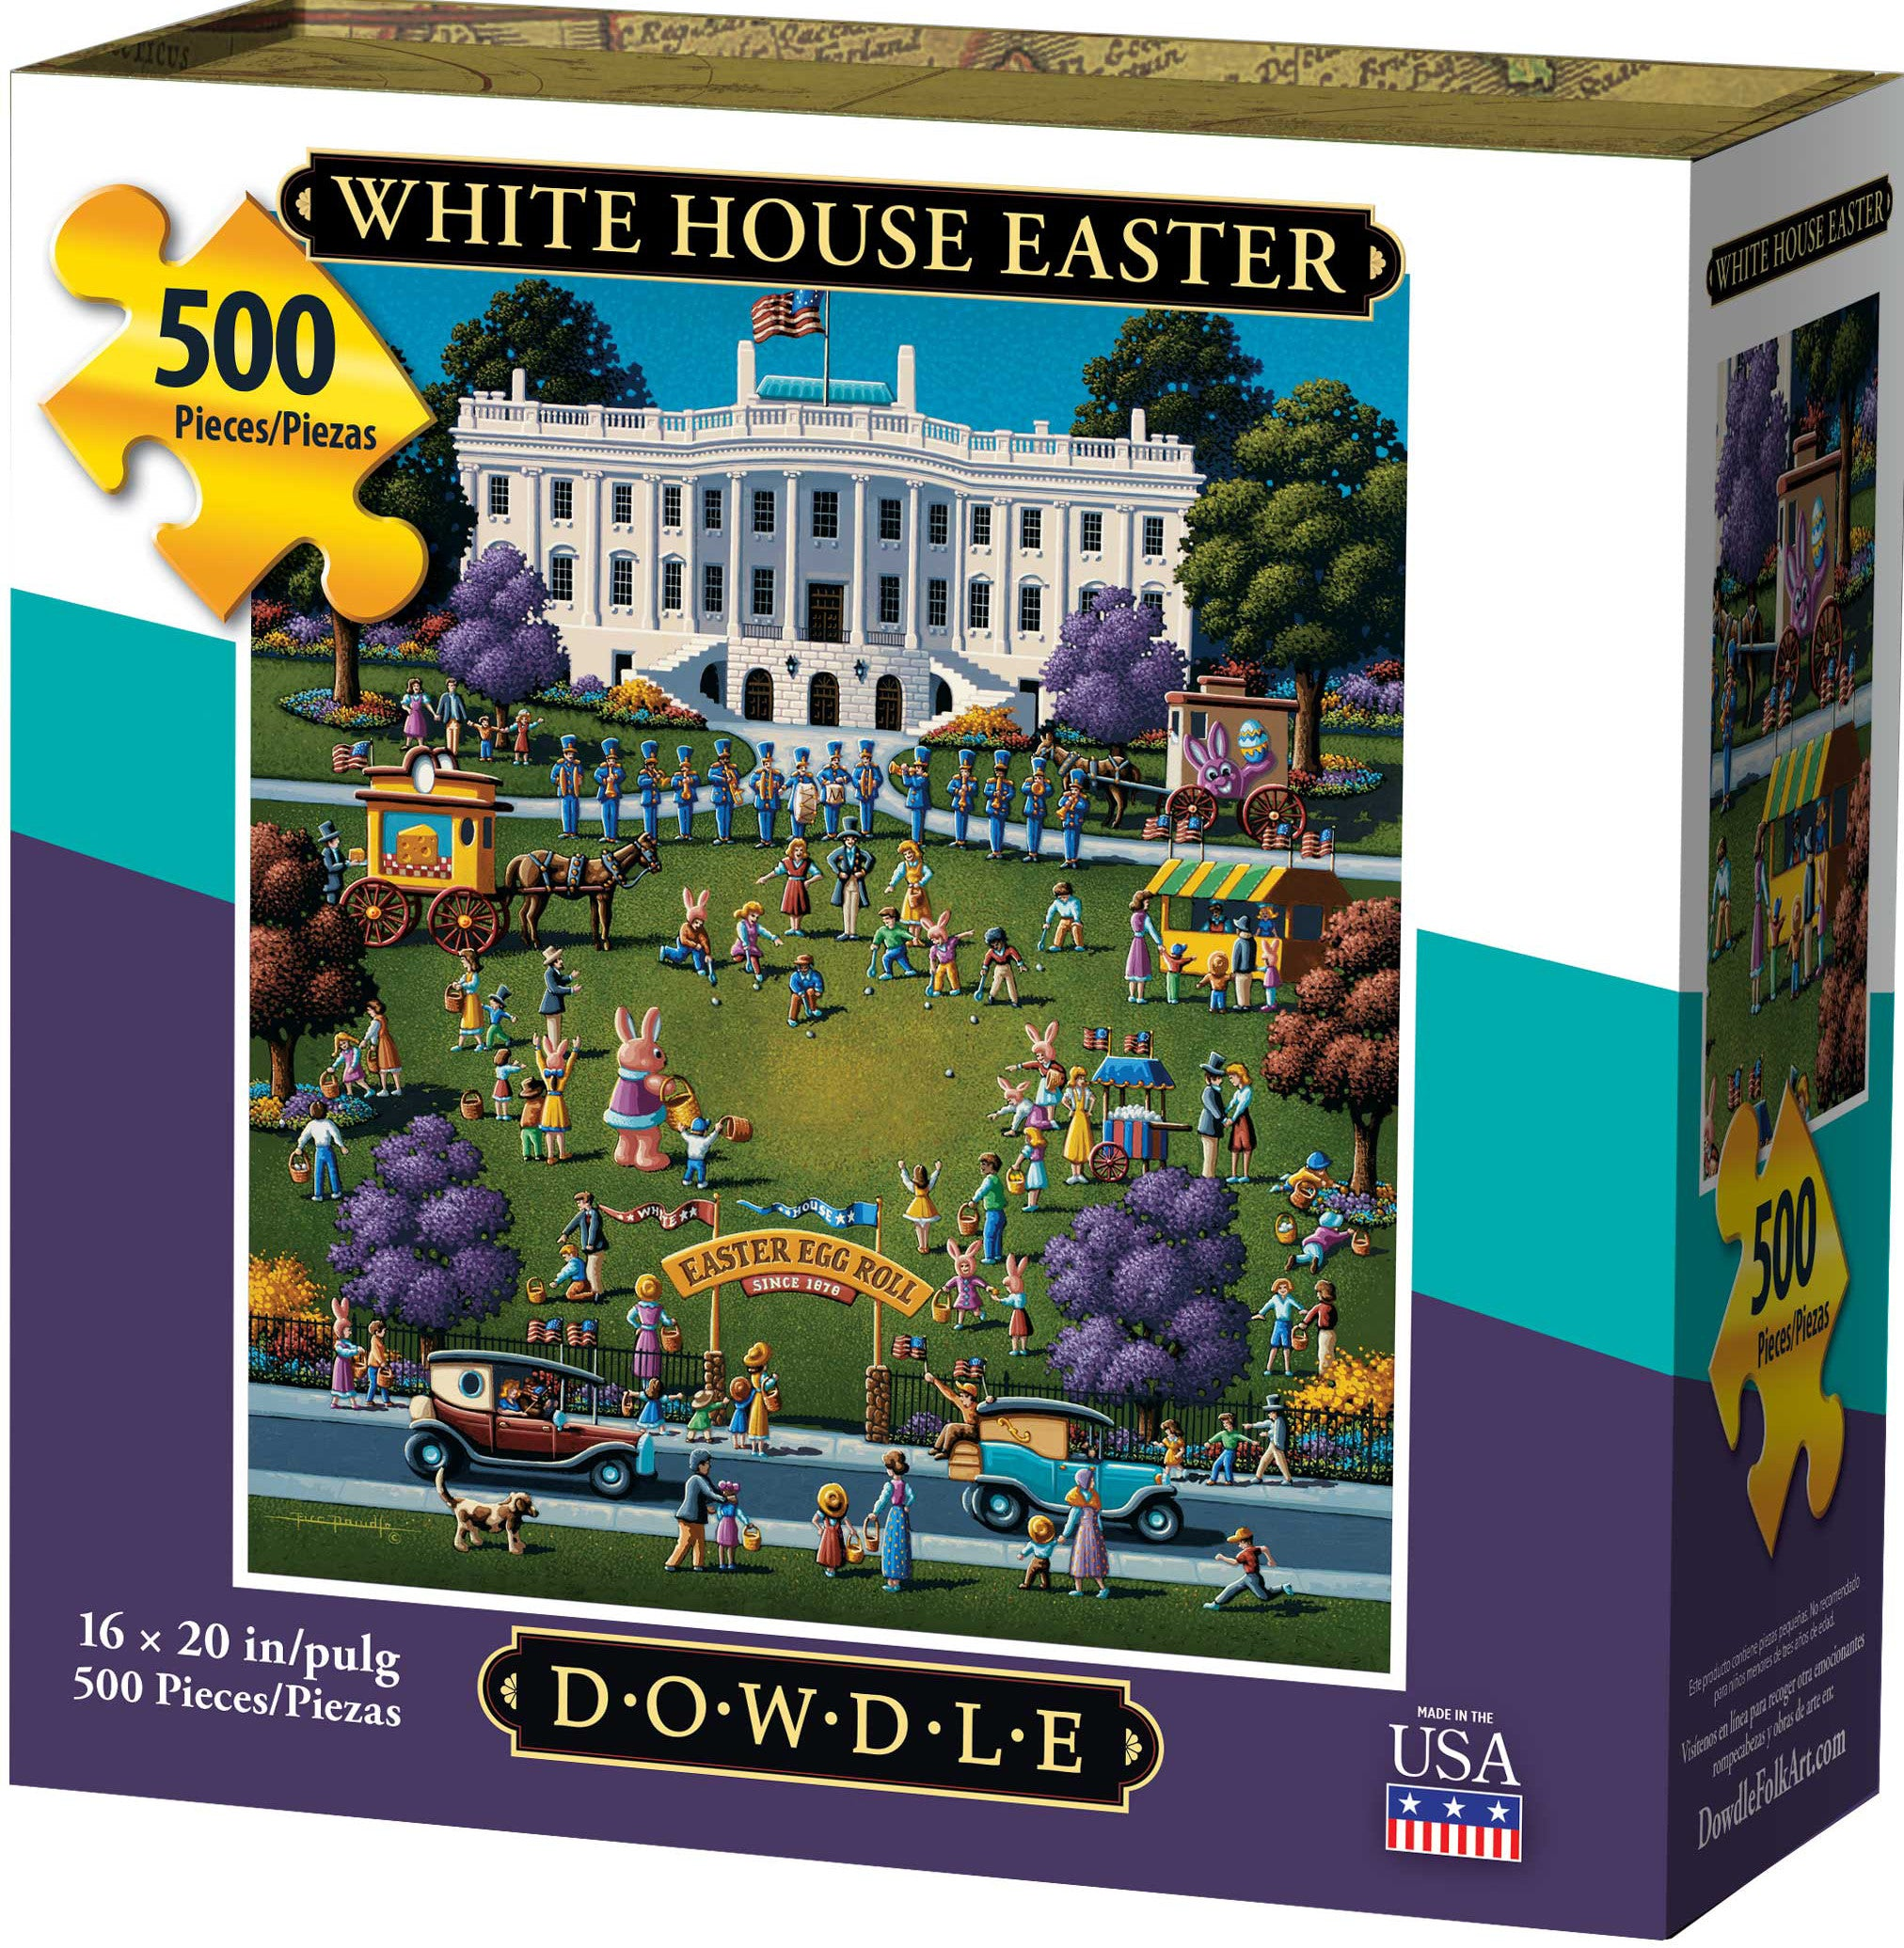 White house easter 500 piece puzzle white house gifts white house easter 500 piece puzzle negle Images